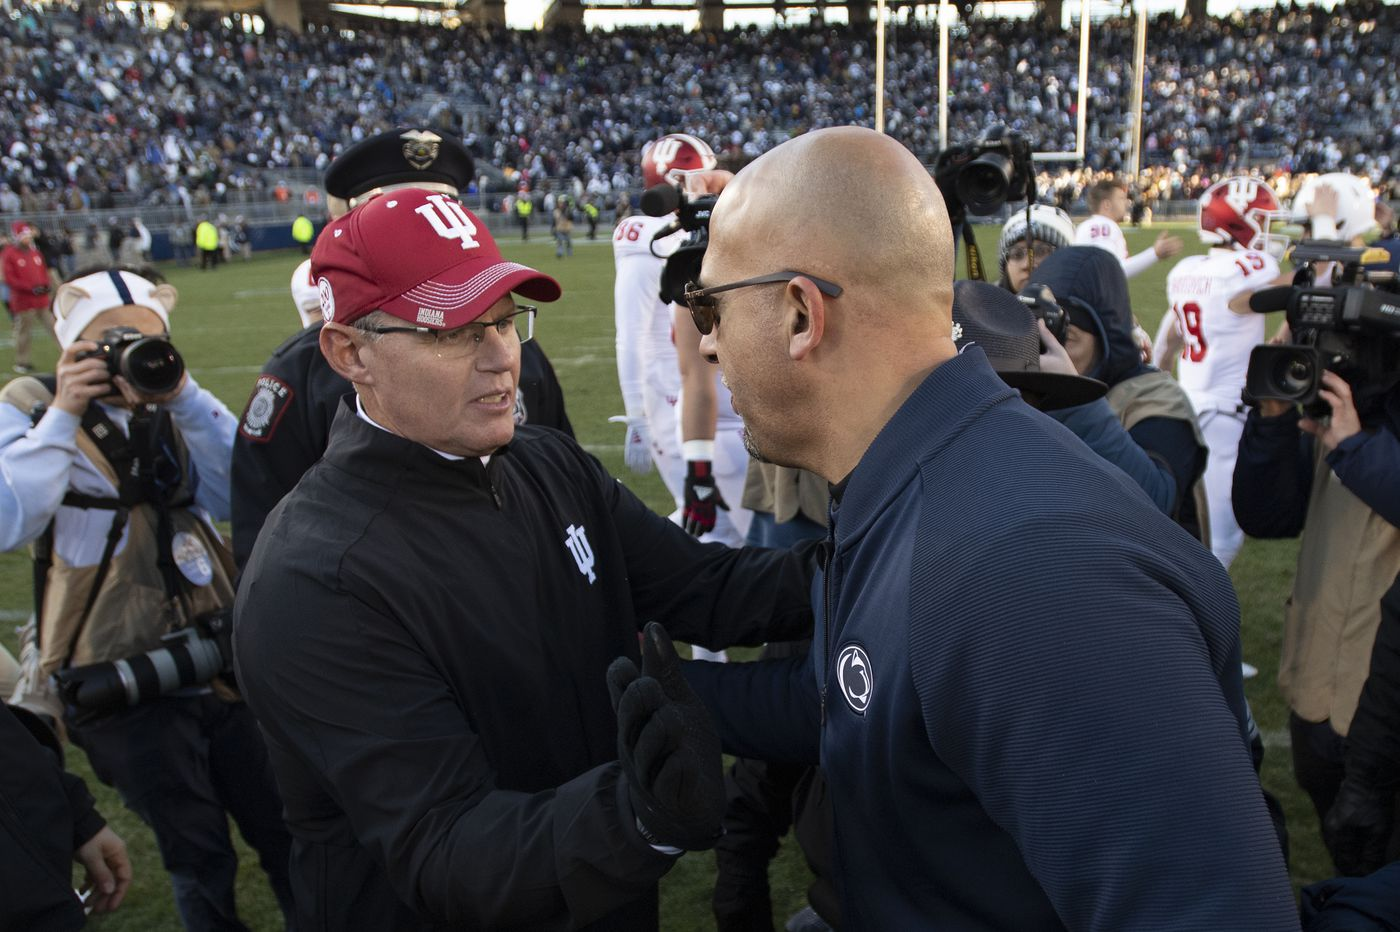 Indiana defensive end changes his college football commitment to Penn State